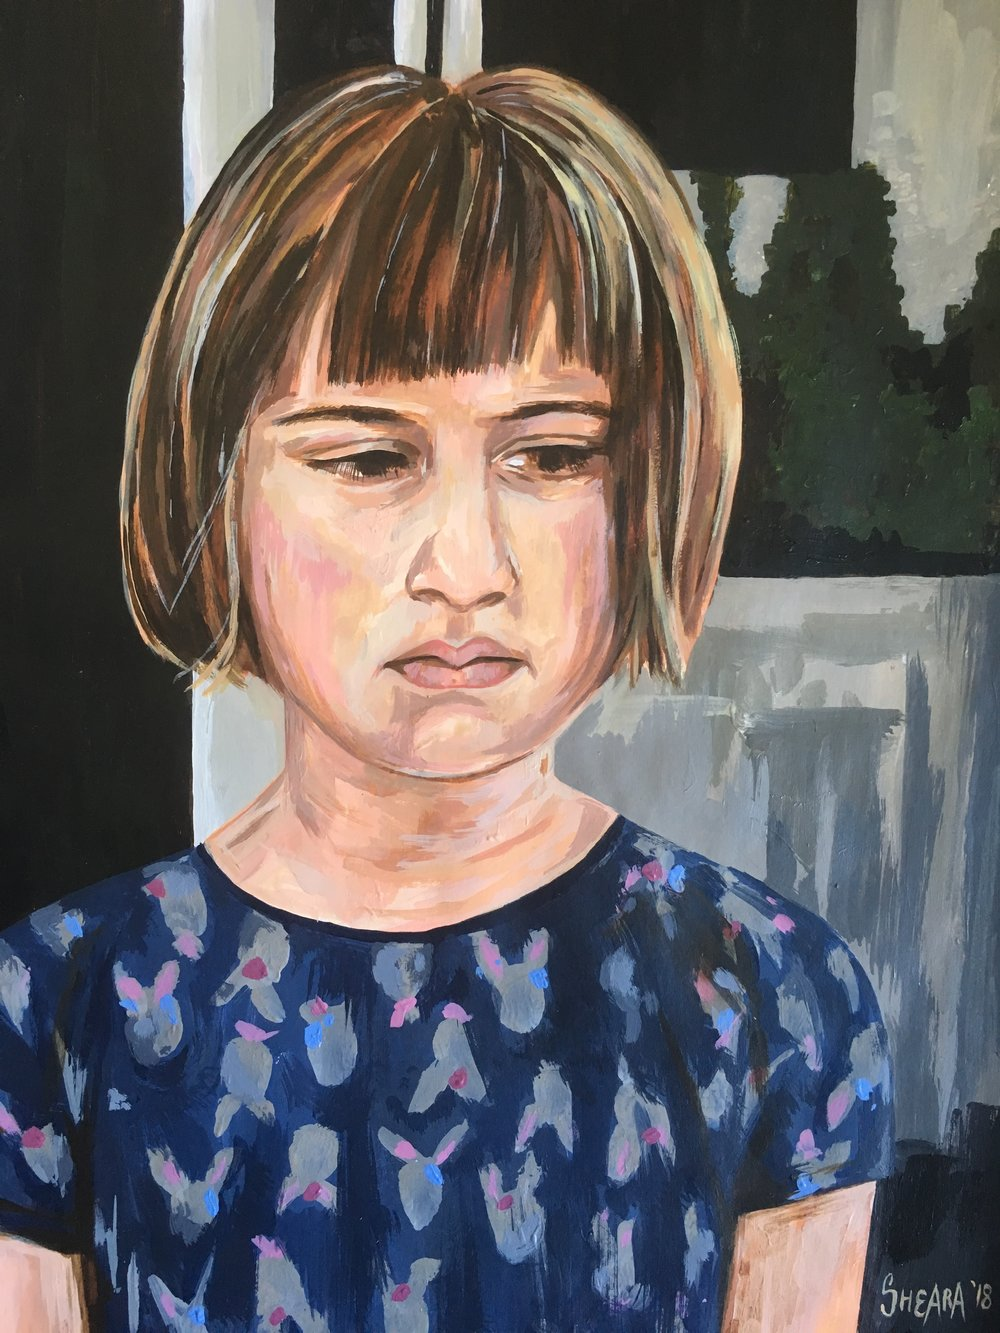 People's Choice Award Winner: 'Girl in the Rabbit Dress' by Sheara Abrahams